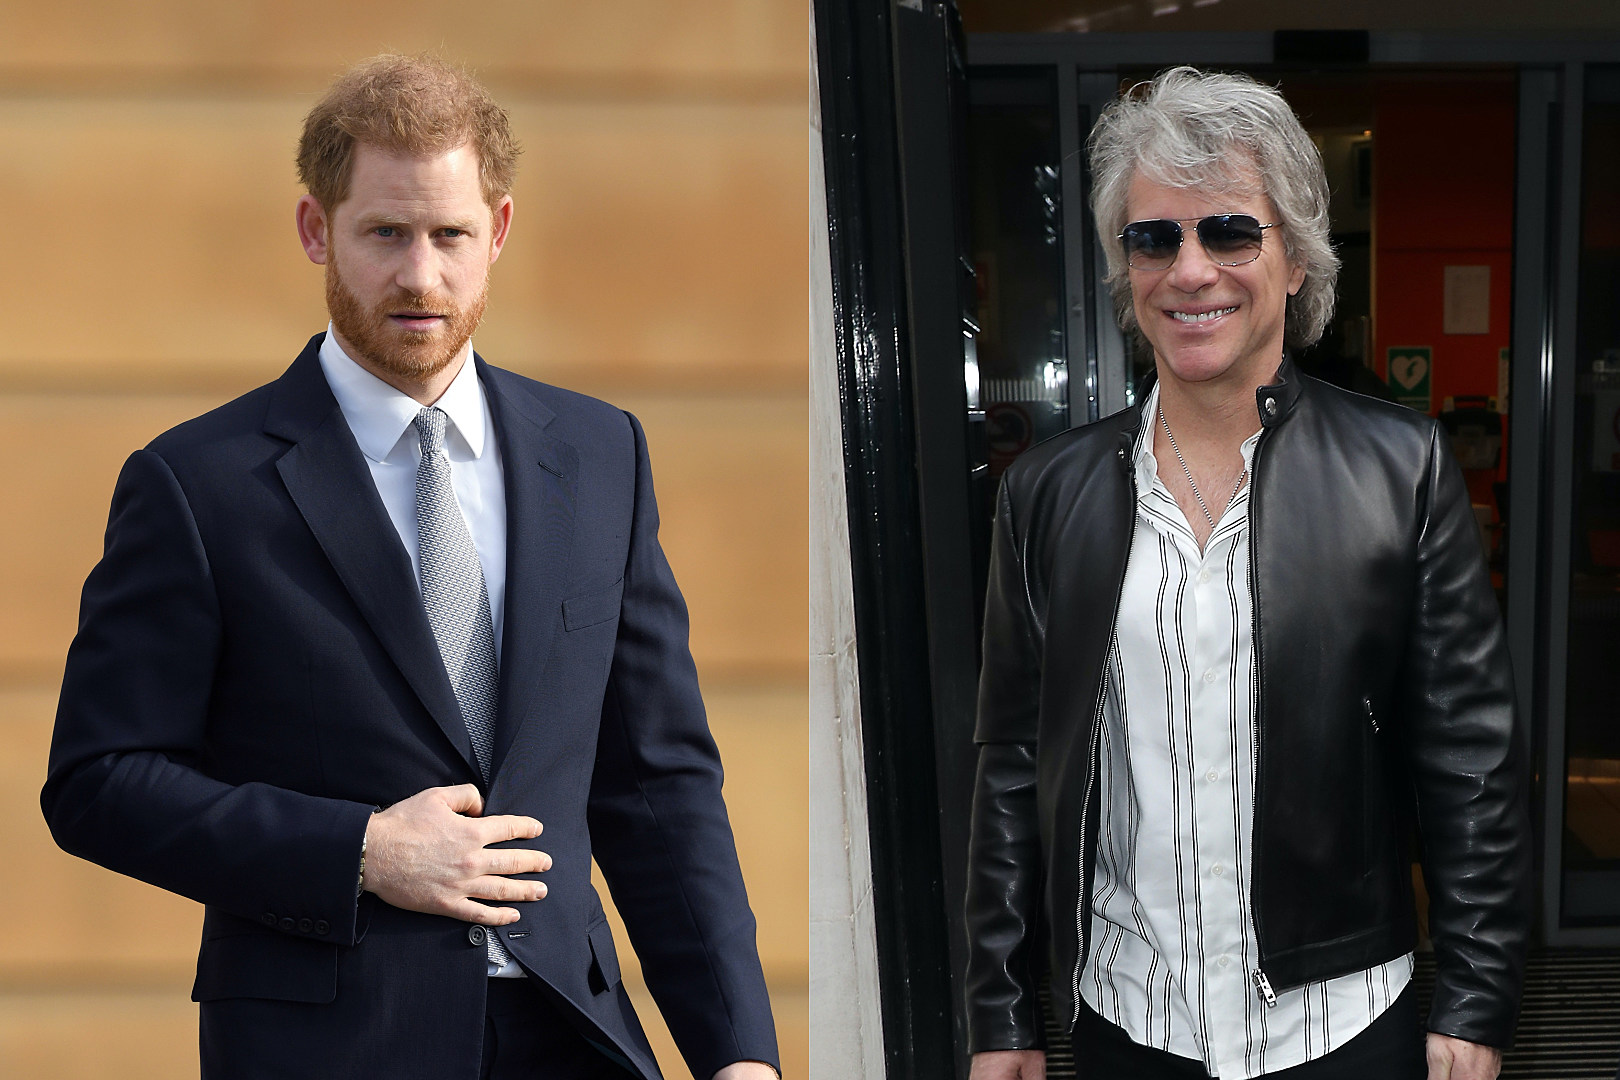 Prince Harry Is Going to Record a Song With Bon Jovi